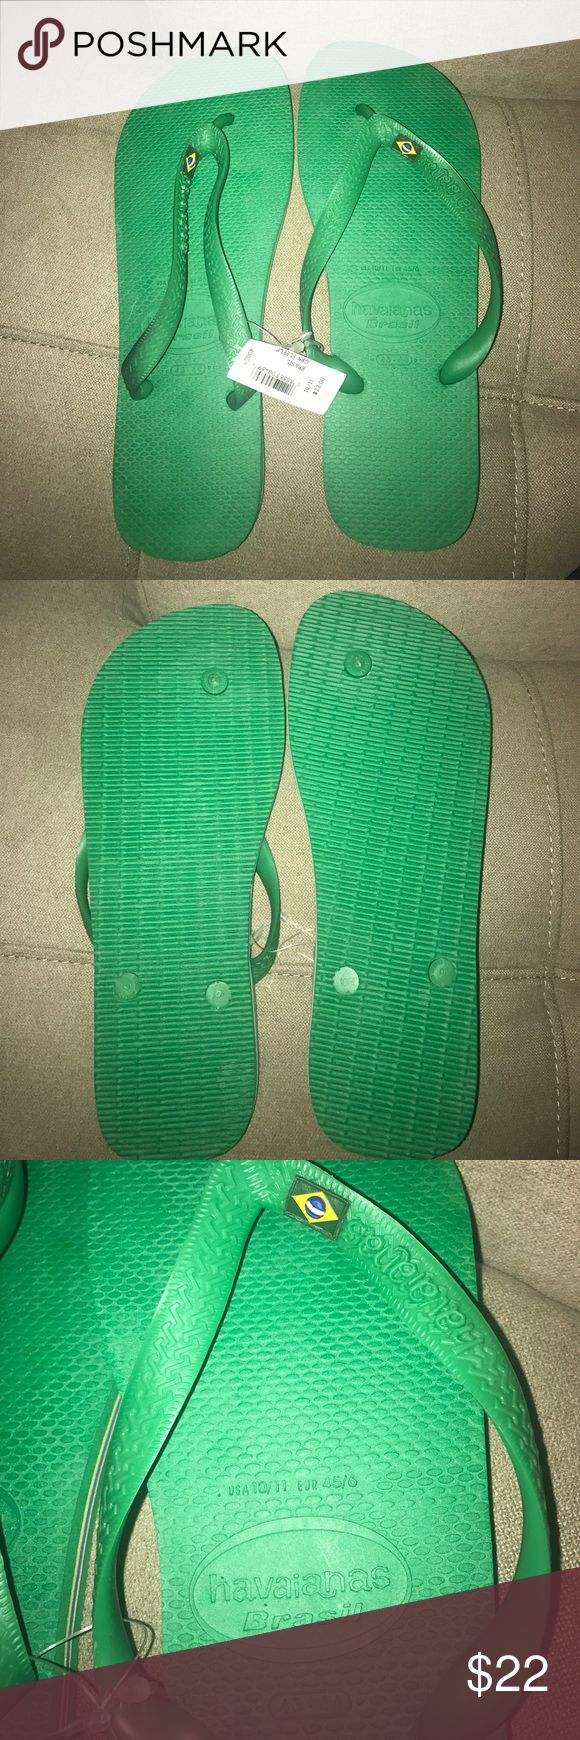 Men's Havaianas Brasil Flip Flops Men's Havaianas Brasil Flip Flops. Size 10/11. Green with Brazil flag accent. Brand new never been used Havaianas Shoes Sandals & Flip-Flops